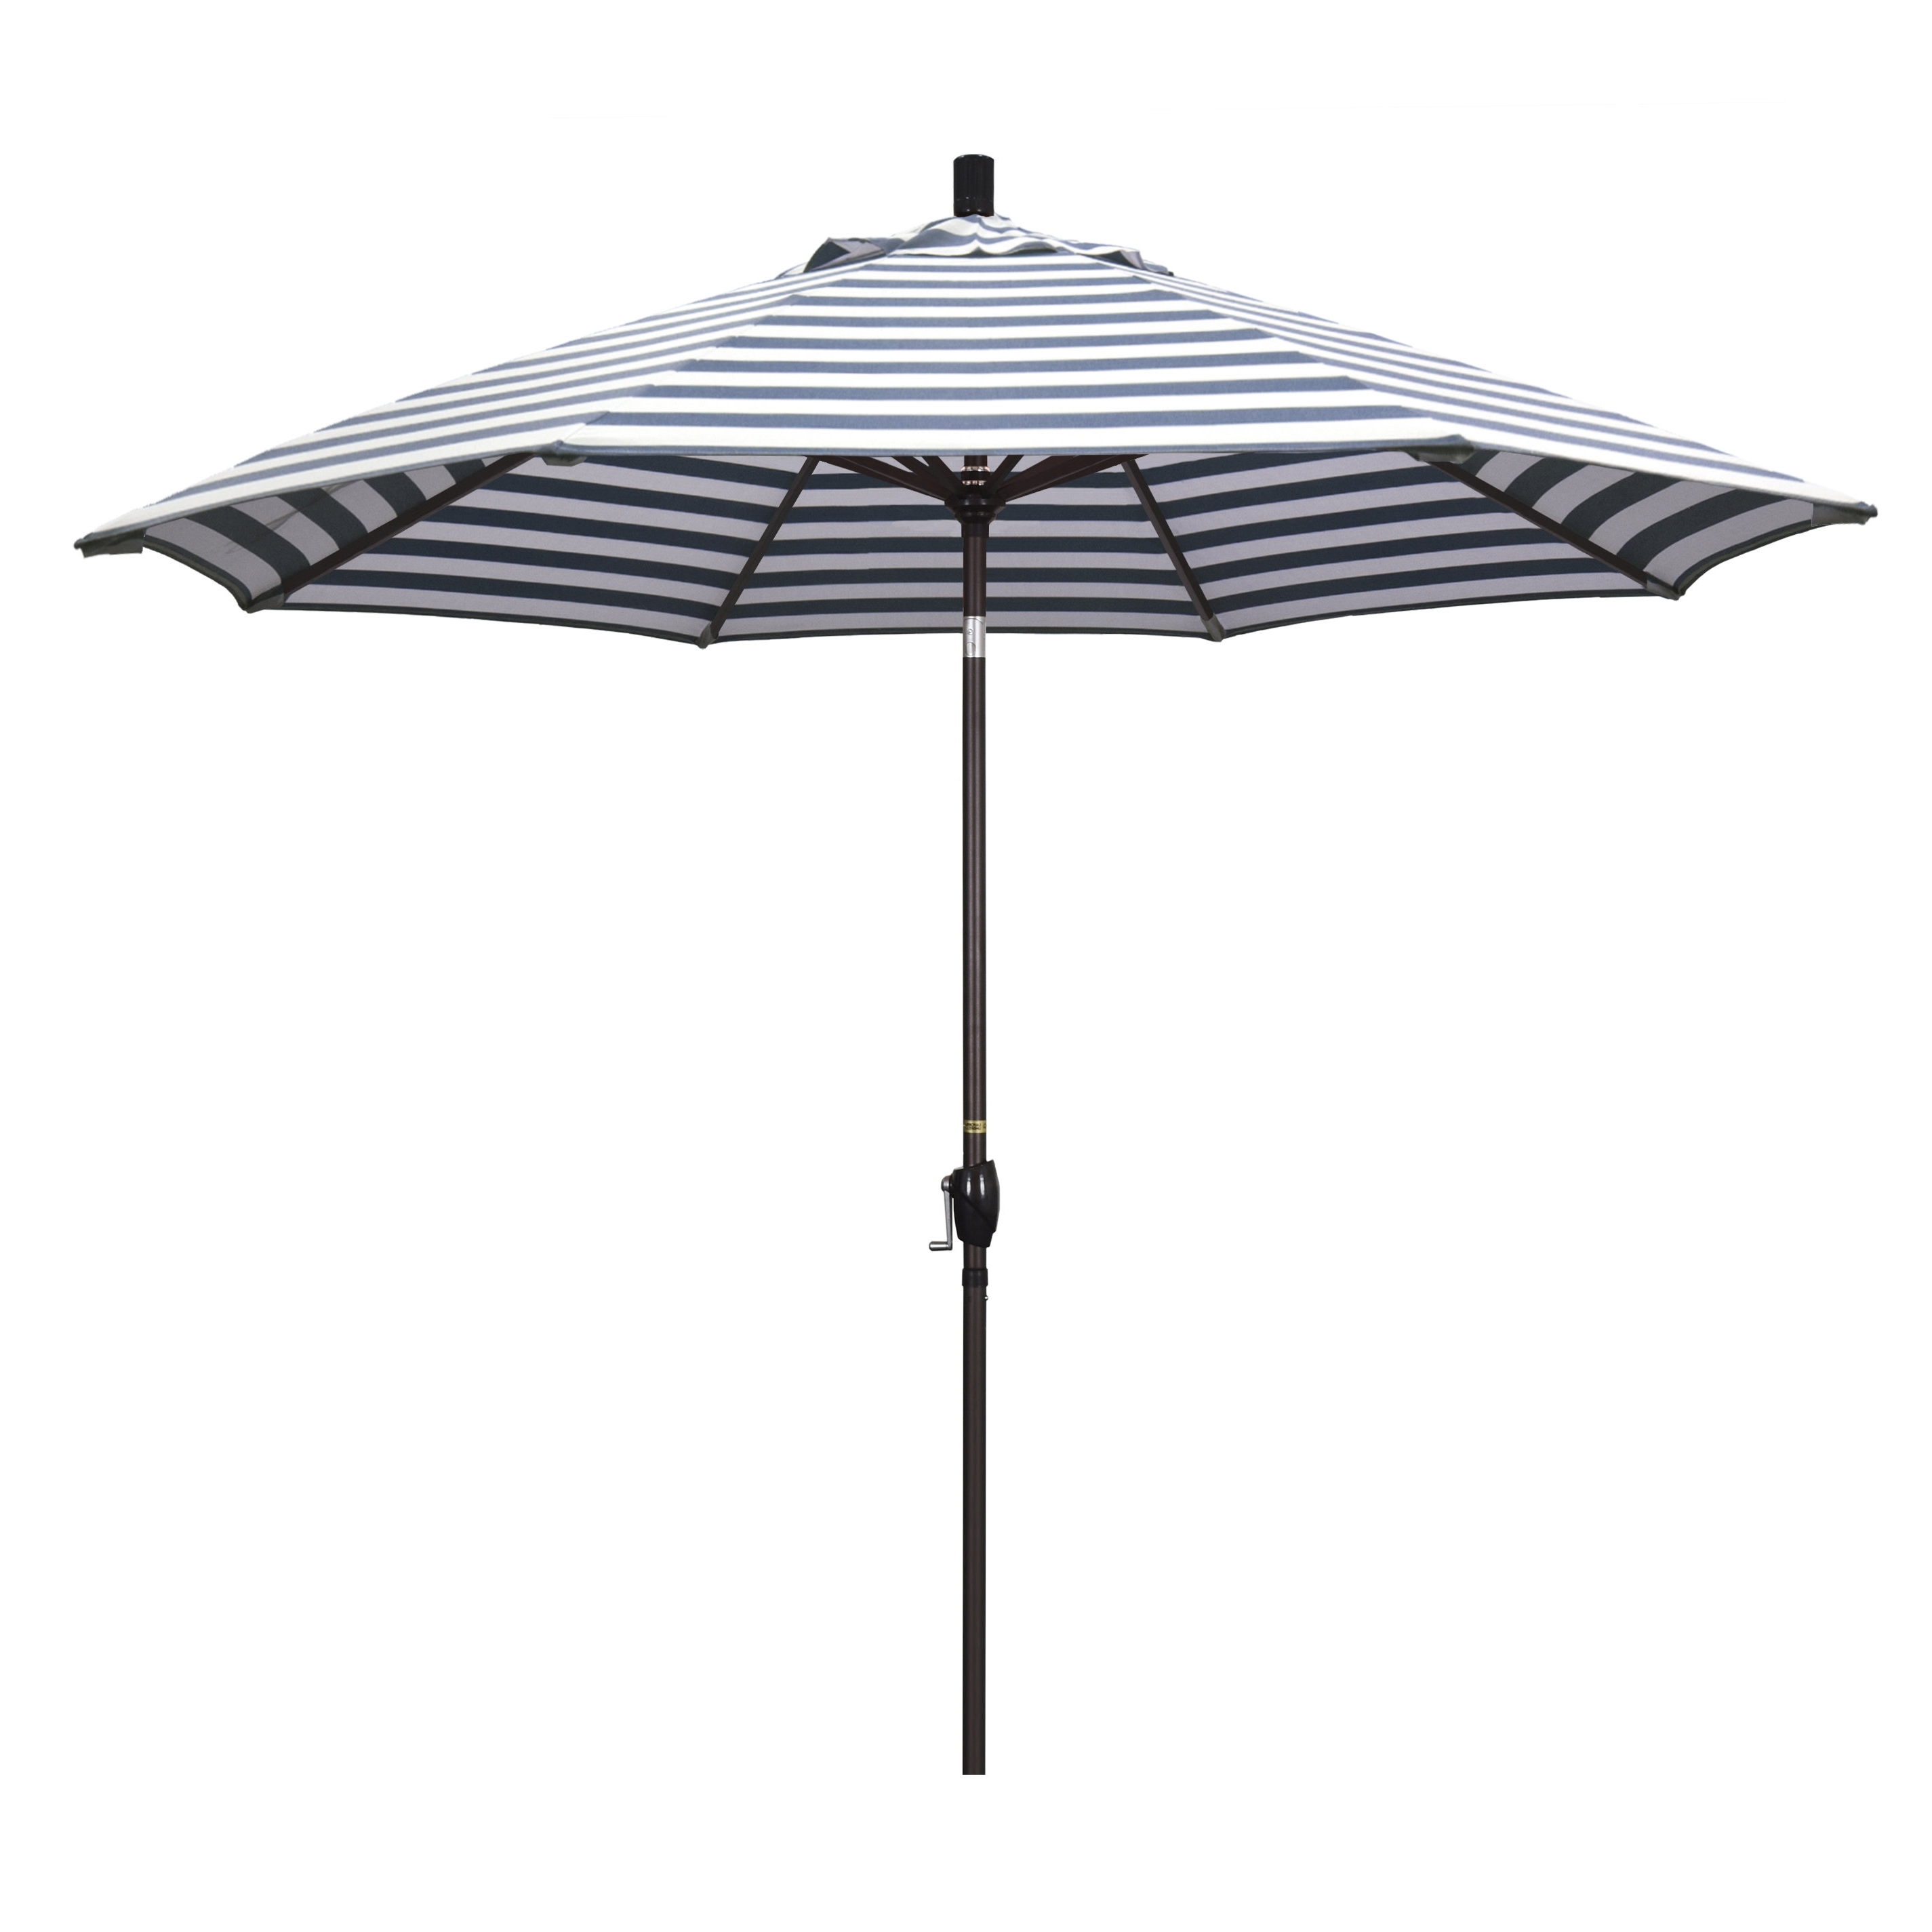 Preferred Wayfair Patio Umbrellas Inside California Umbrella (View 12 of 20)